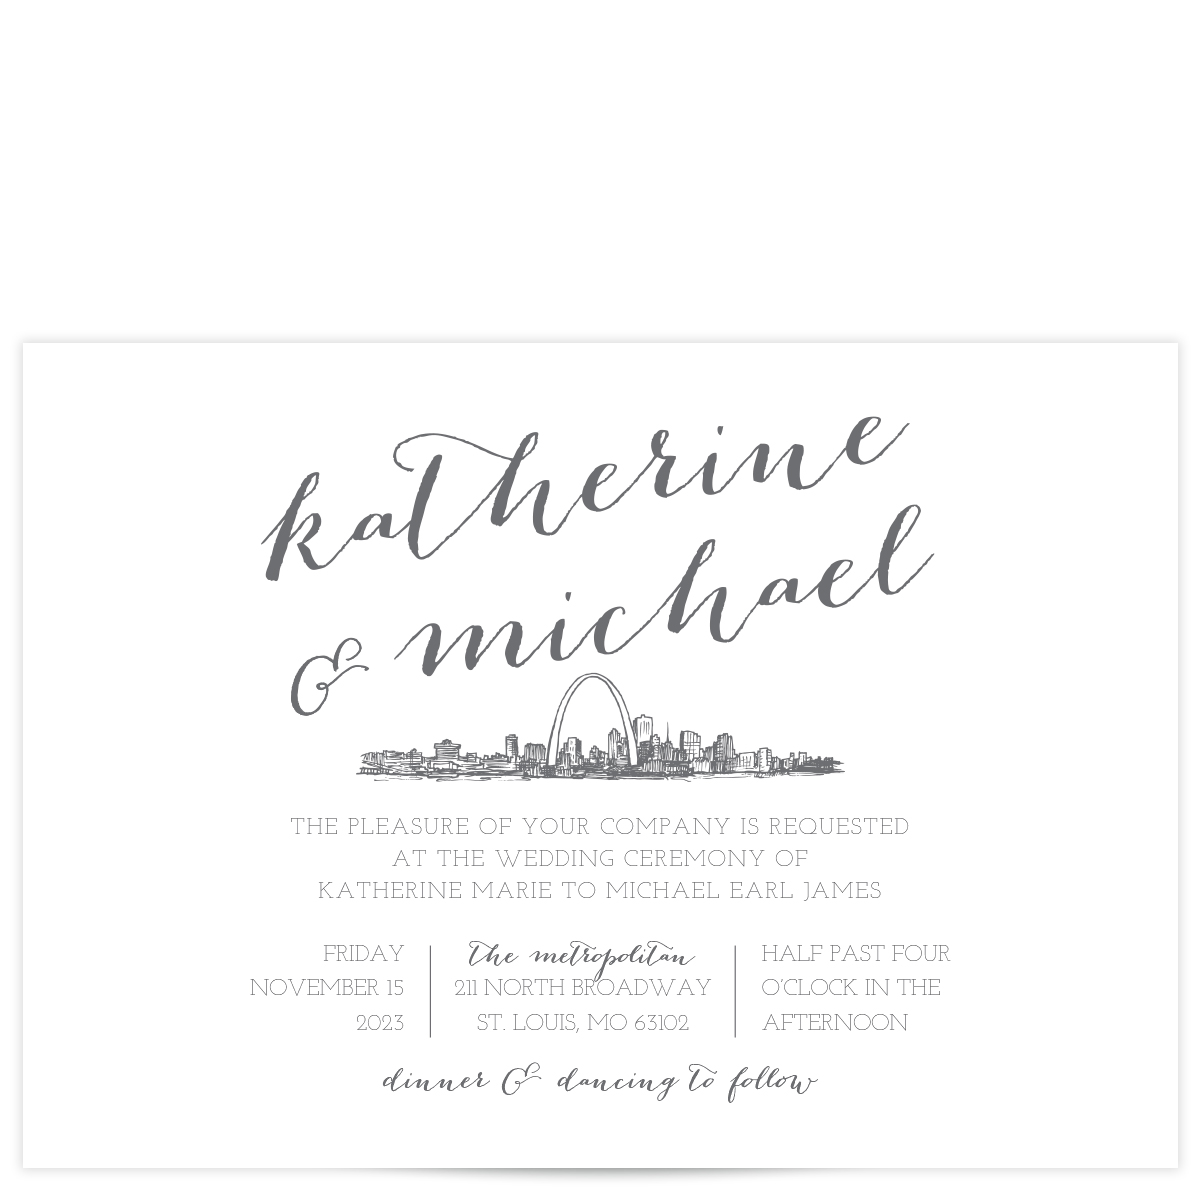 Wedding Invitations Archives - Pixie